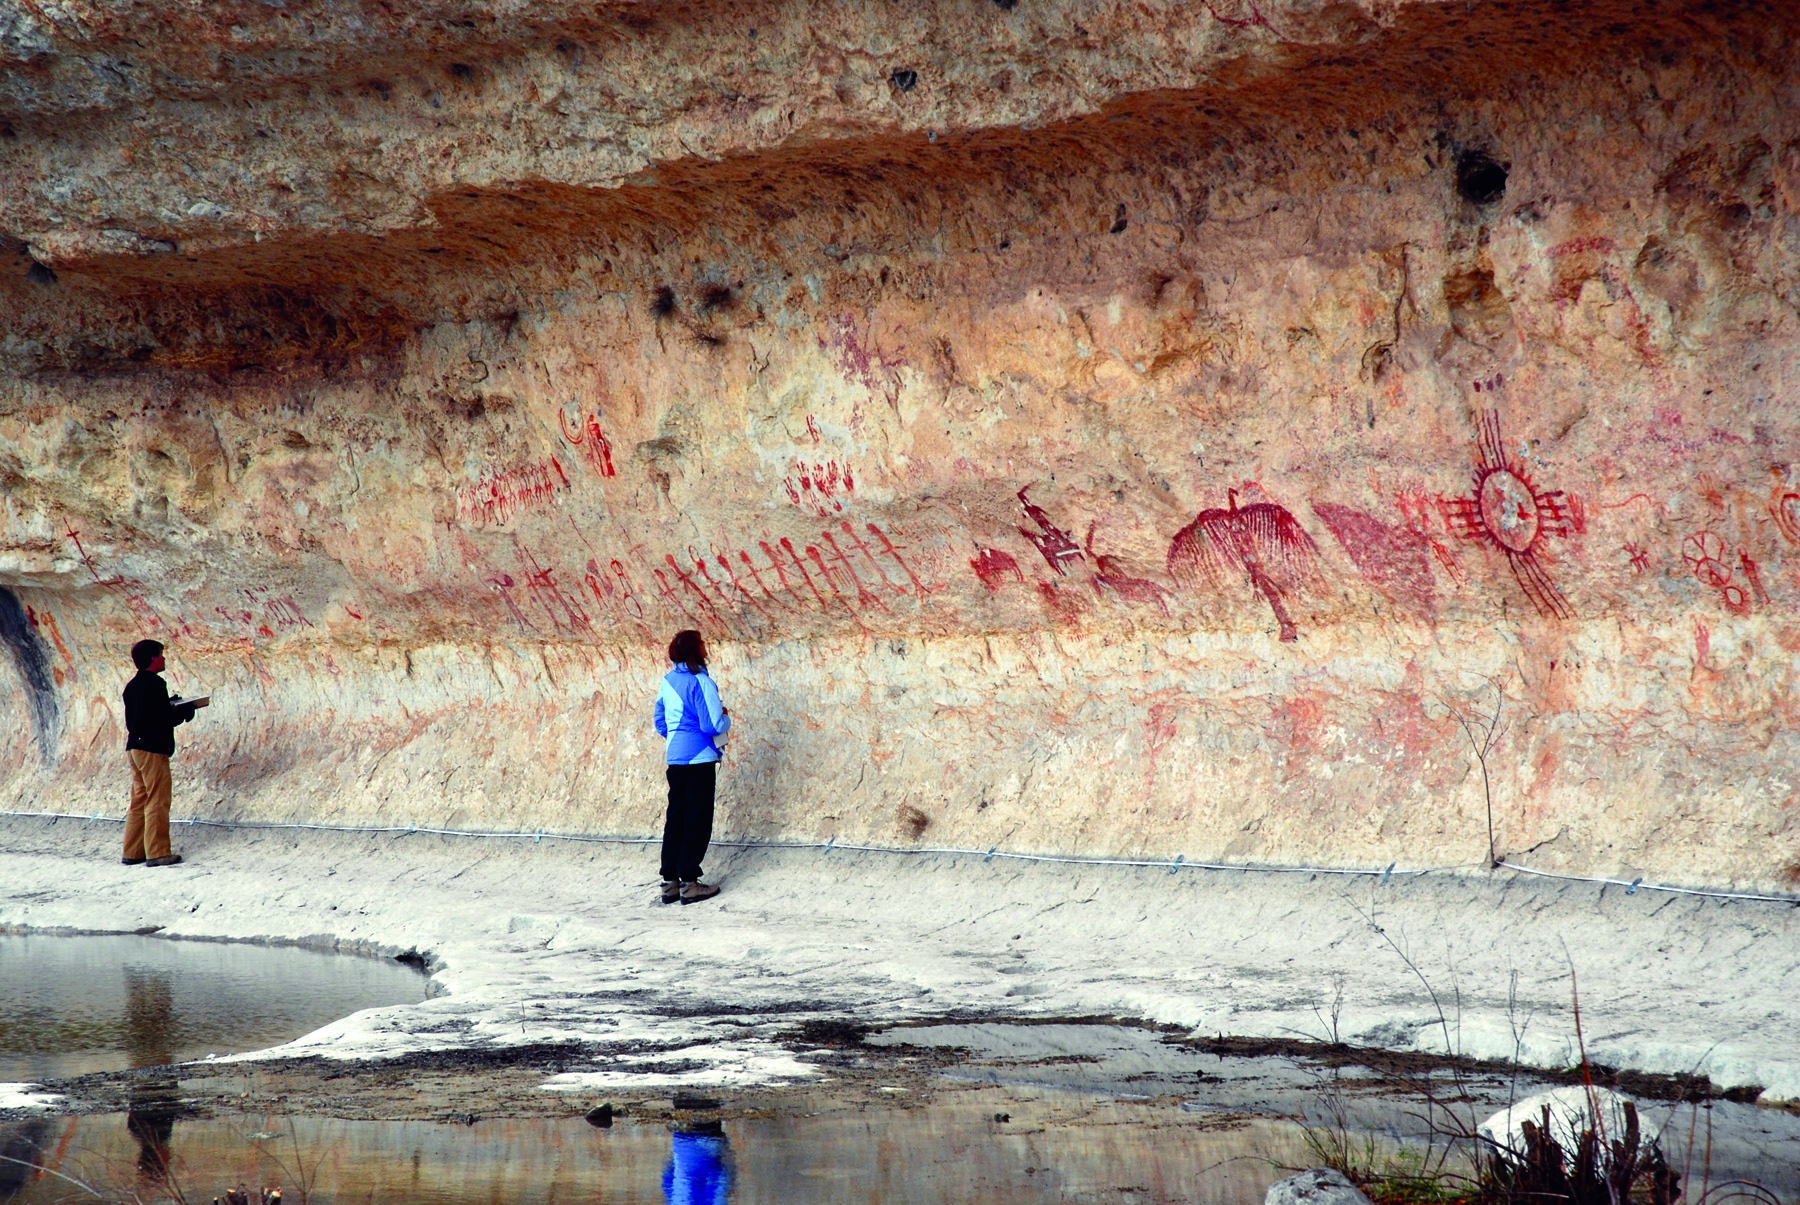 Dr Jamie Hampson studies rock art. These painting in west Texas range from c. 4,000 years old to the nineteenth century.